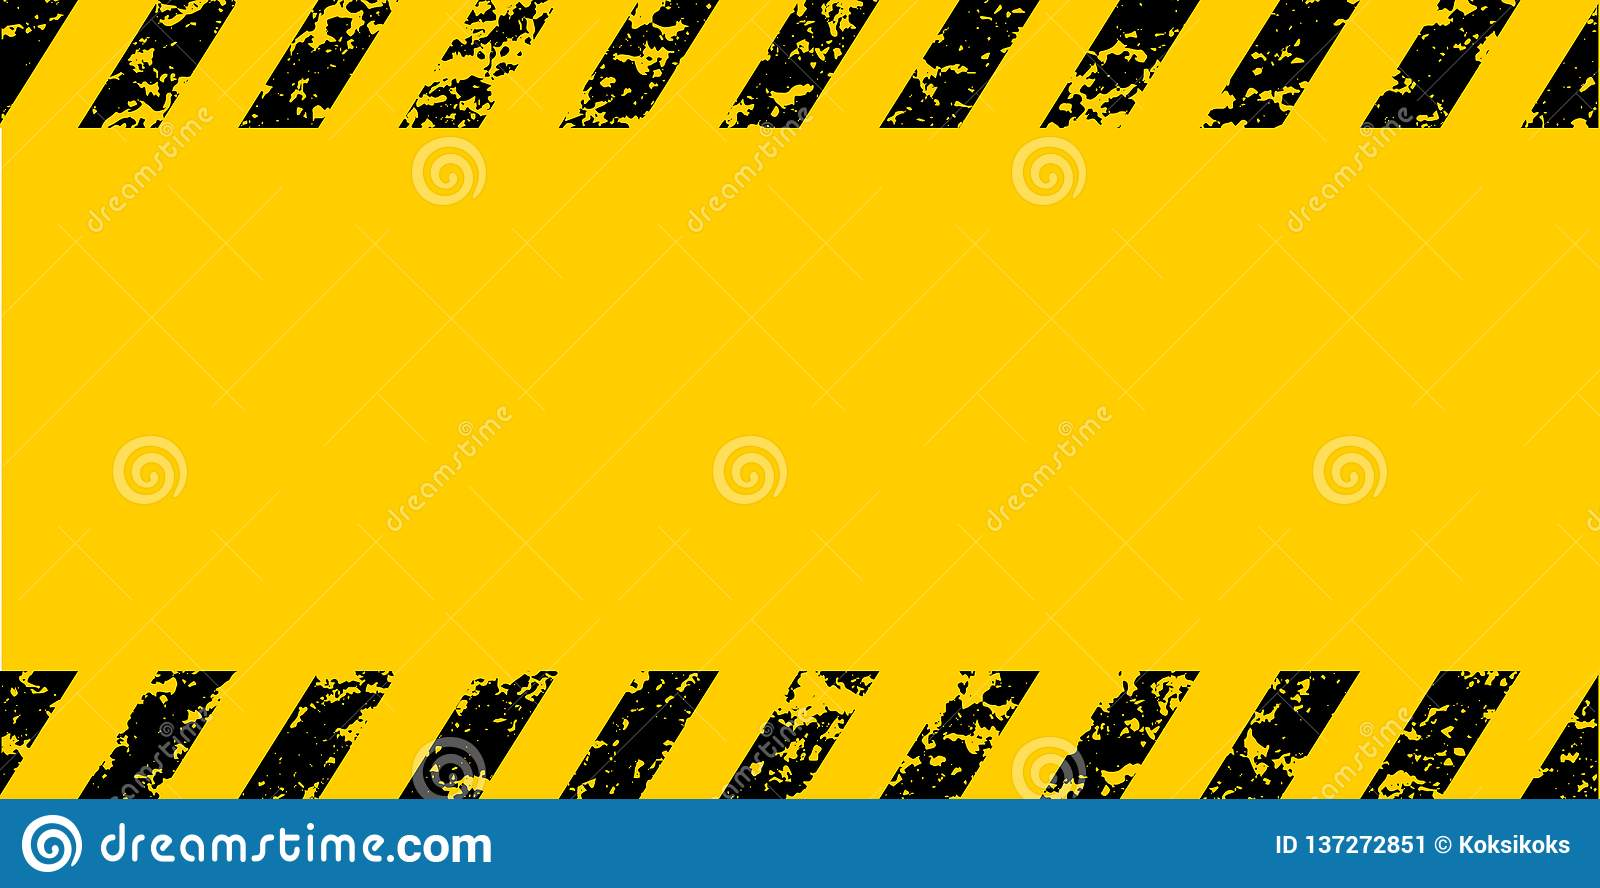 Warning frame grunge yellow black diagonal stripes, vector grunge texture warn caution, construction, safety background